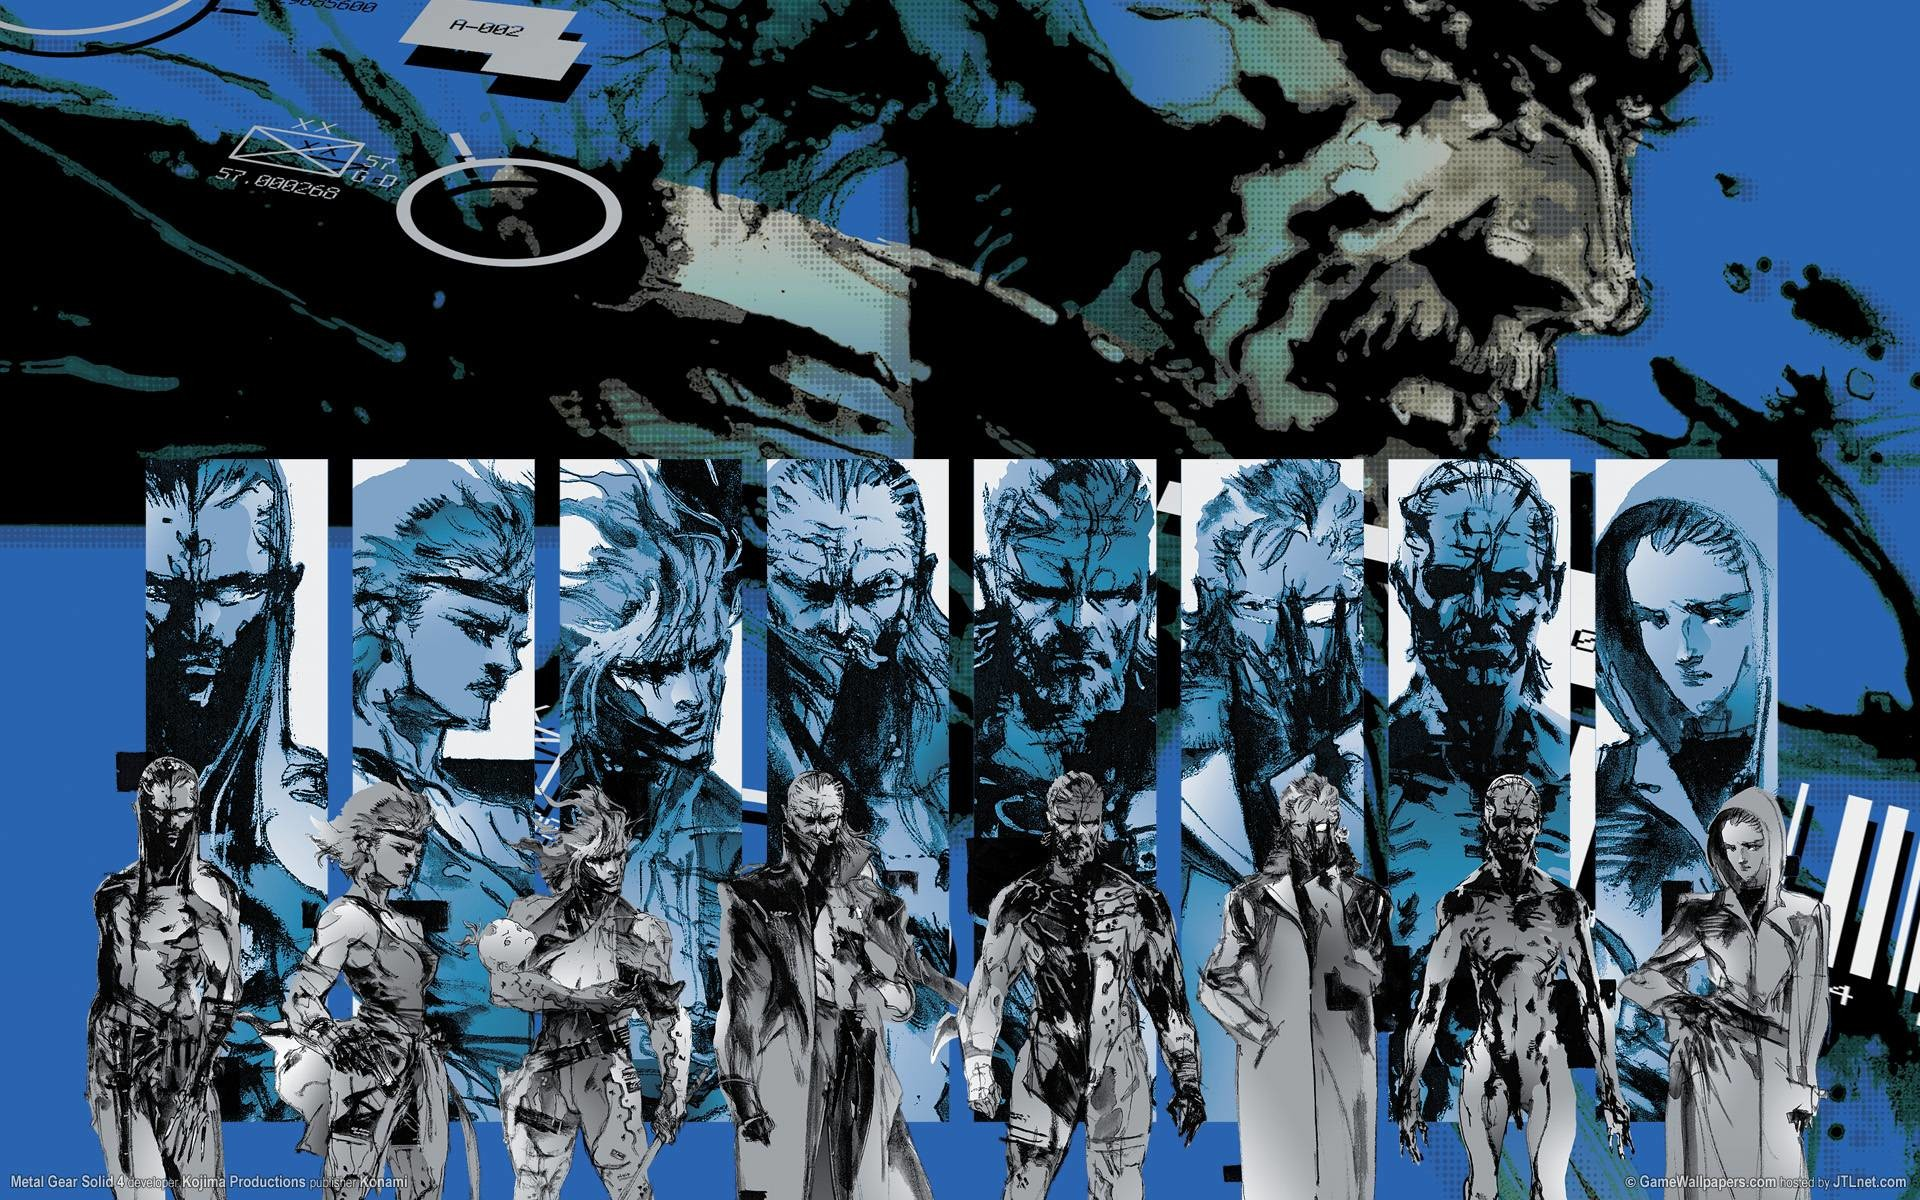 Metal Gear Solid Pc And Mac Wallpapers HD, HQ Backgrounds | HD .